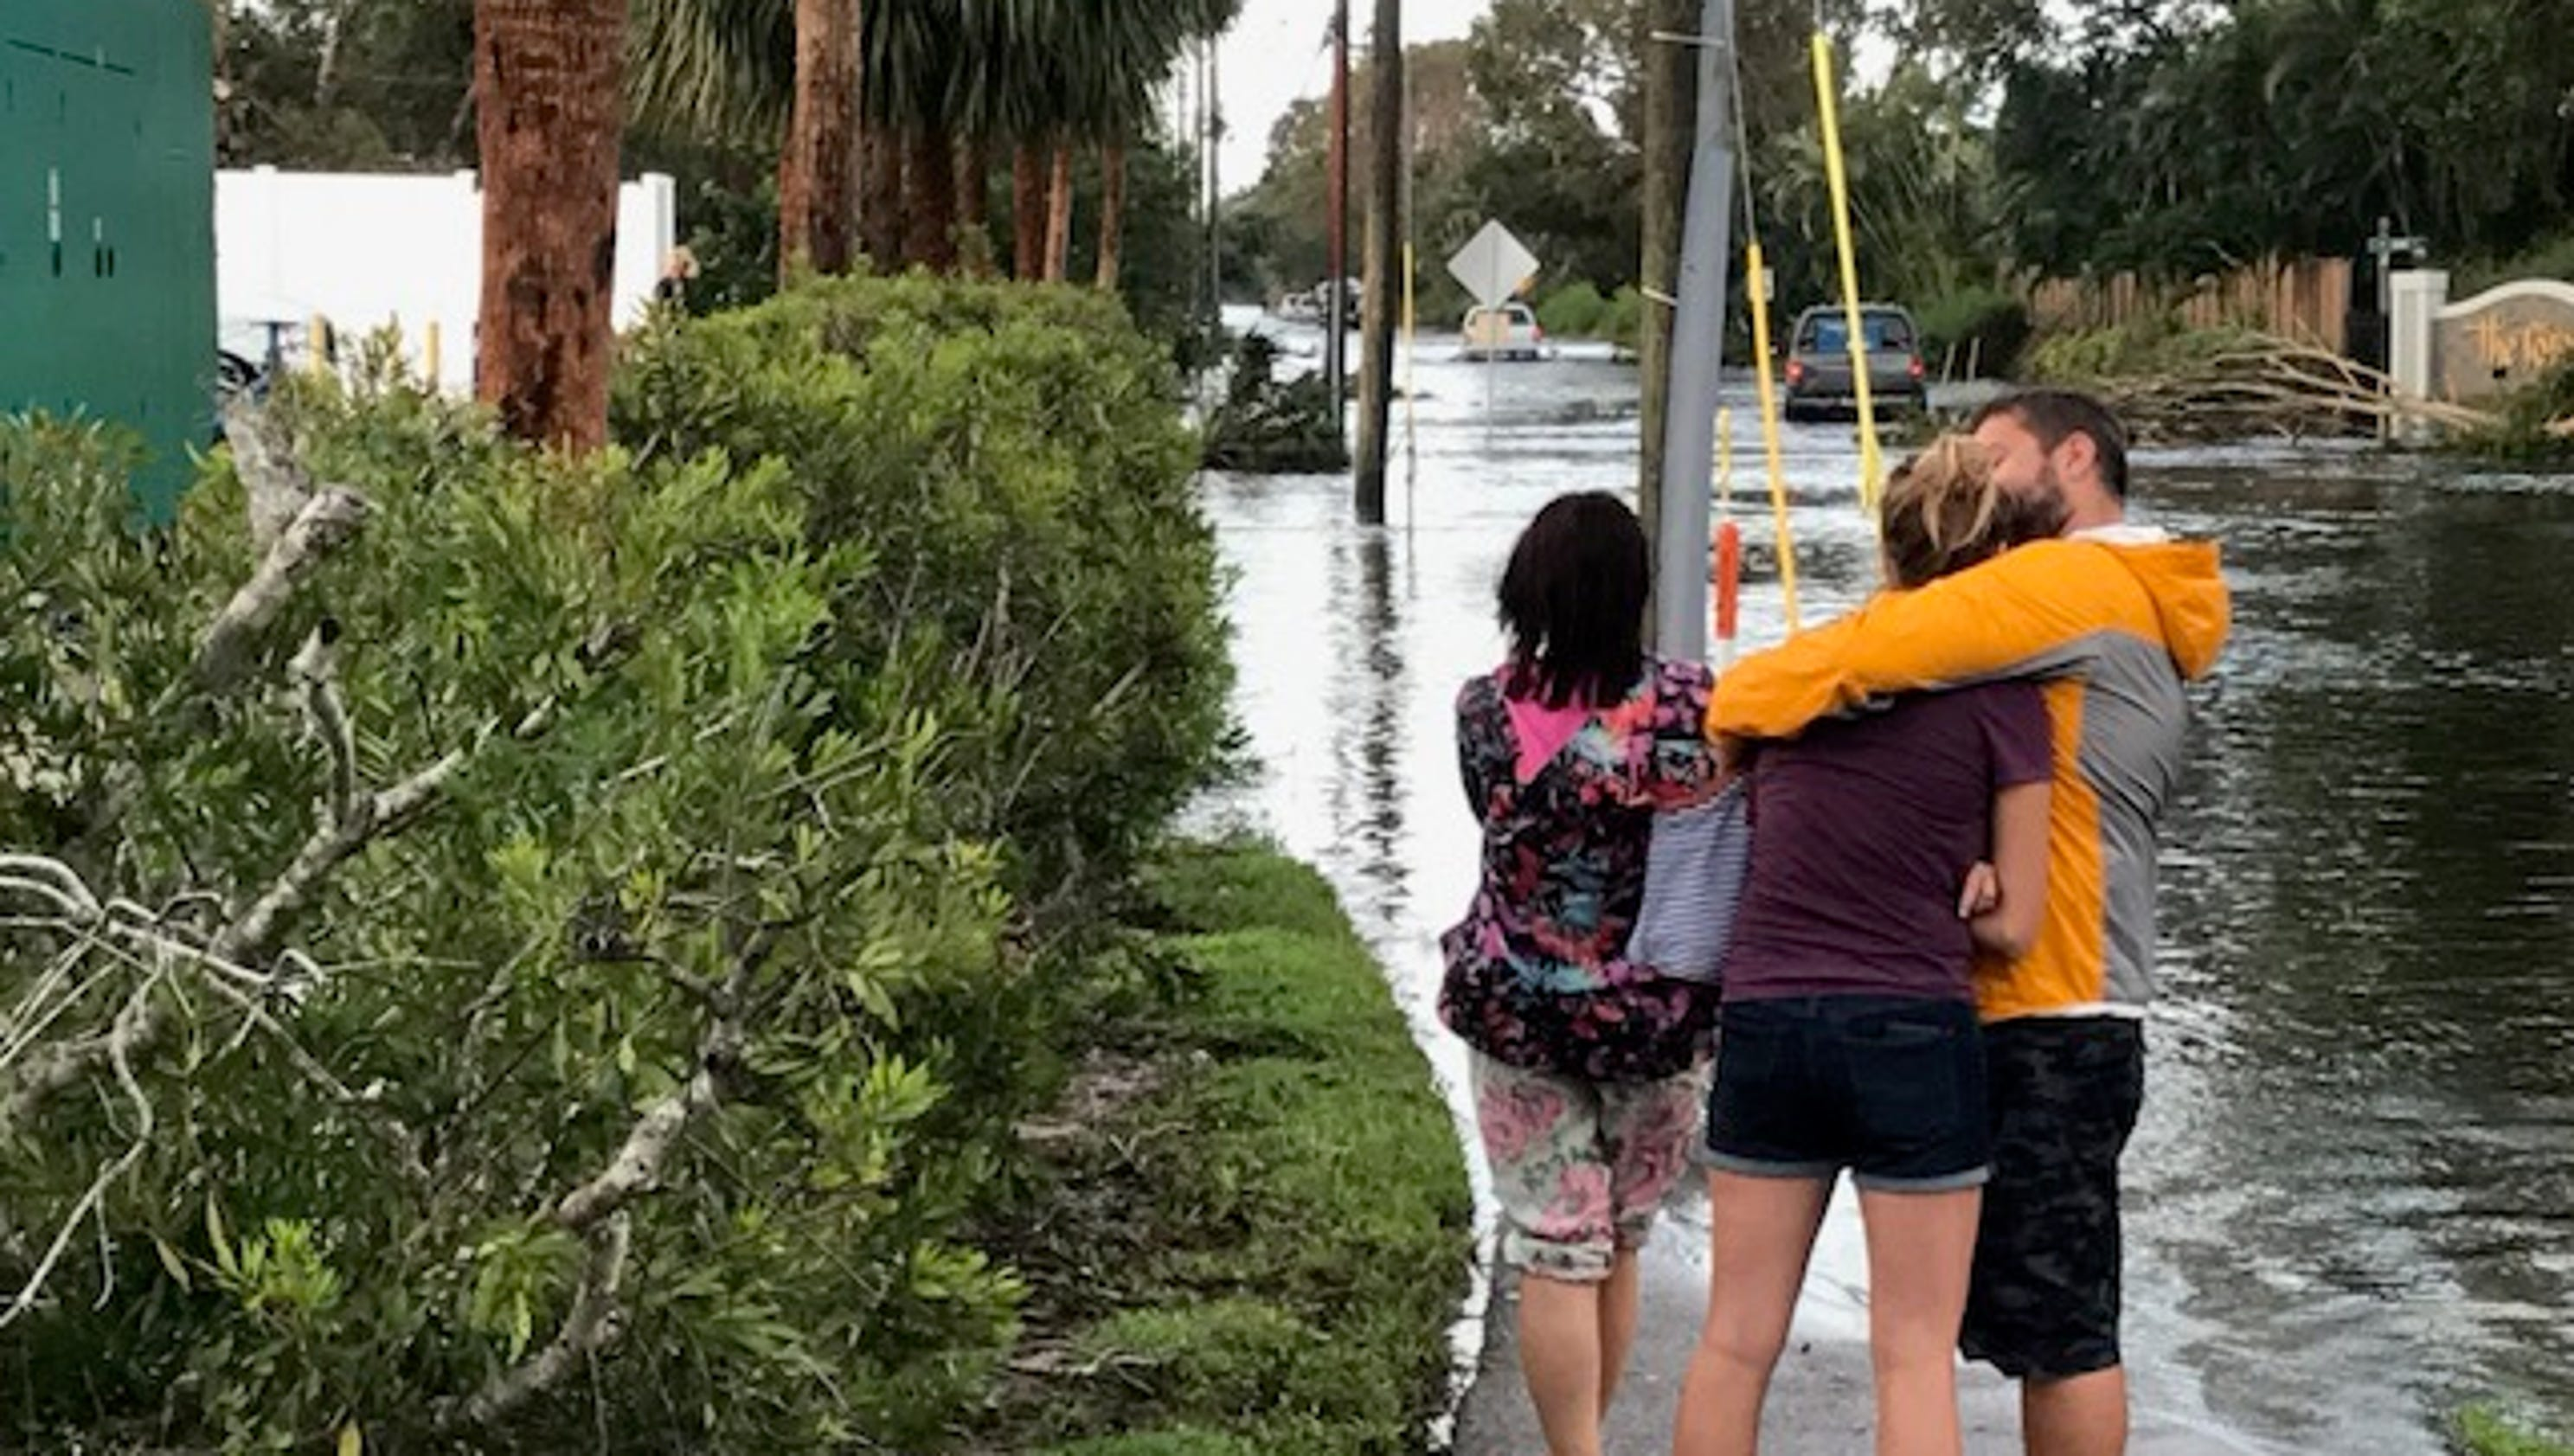 hurricane irma aftermath: island park community under water again